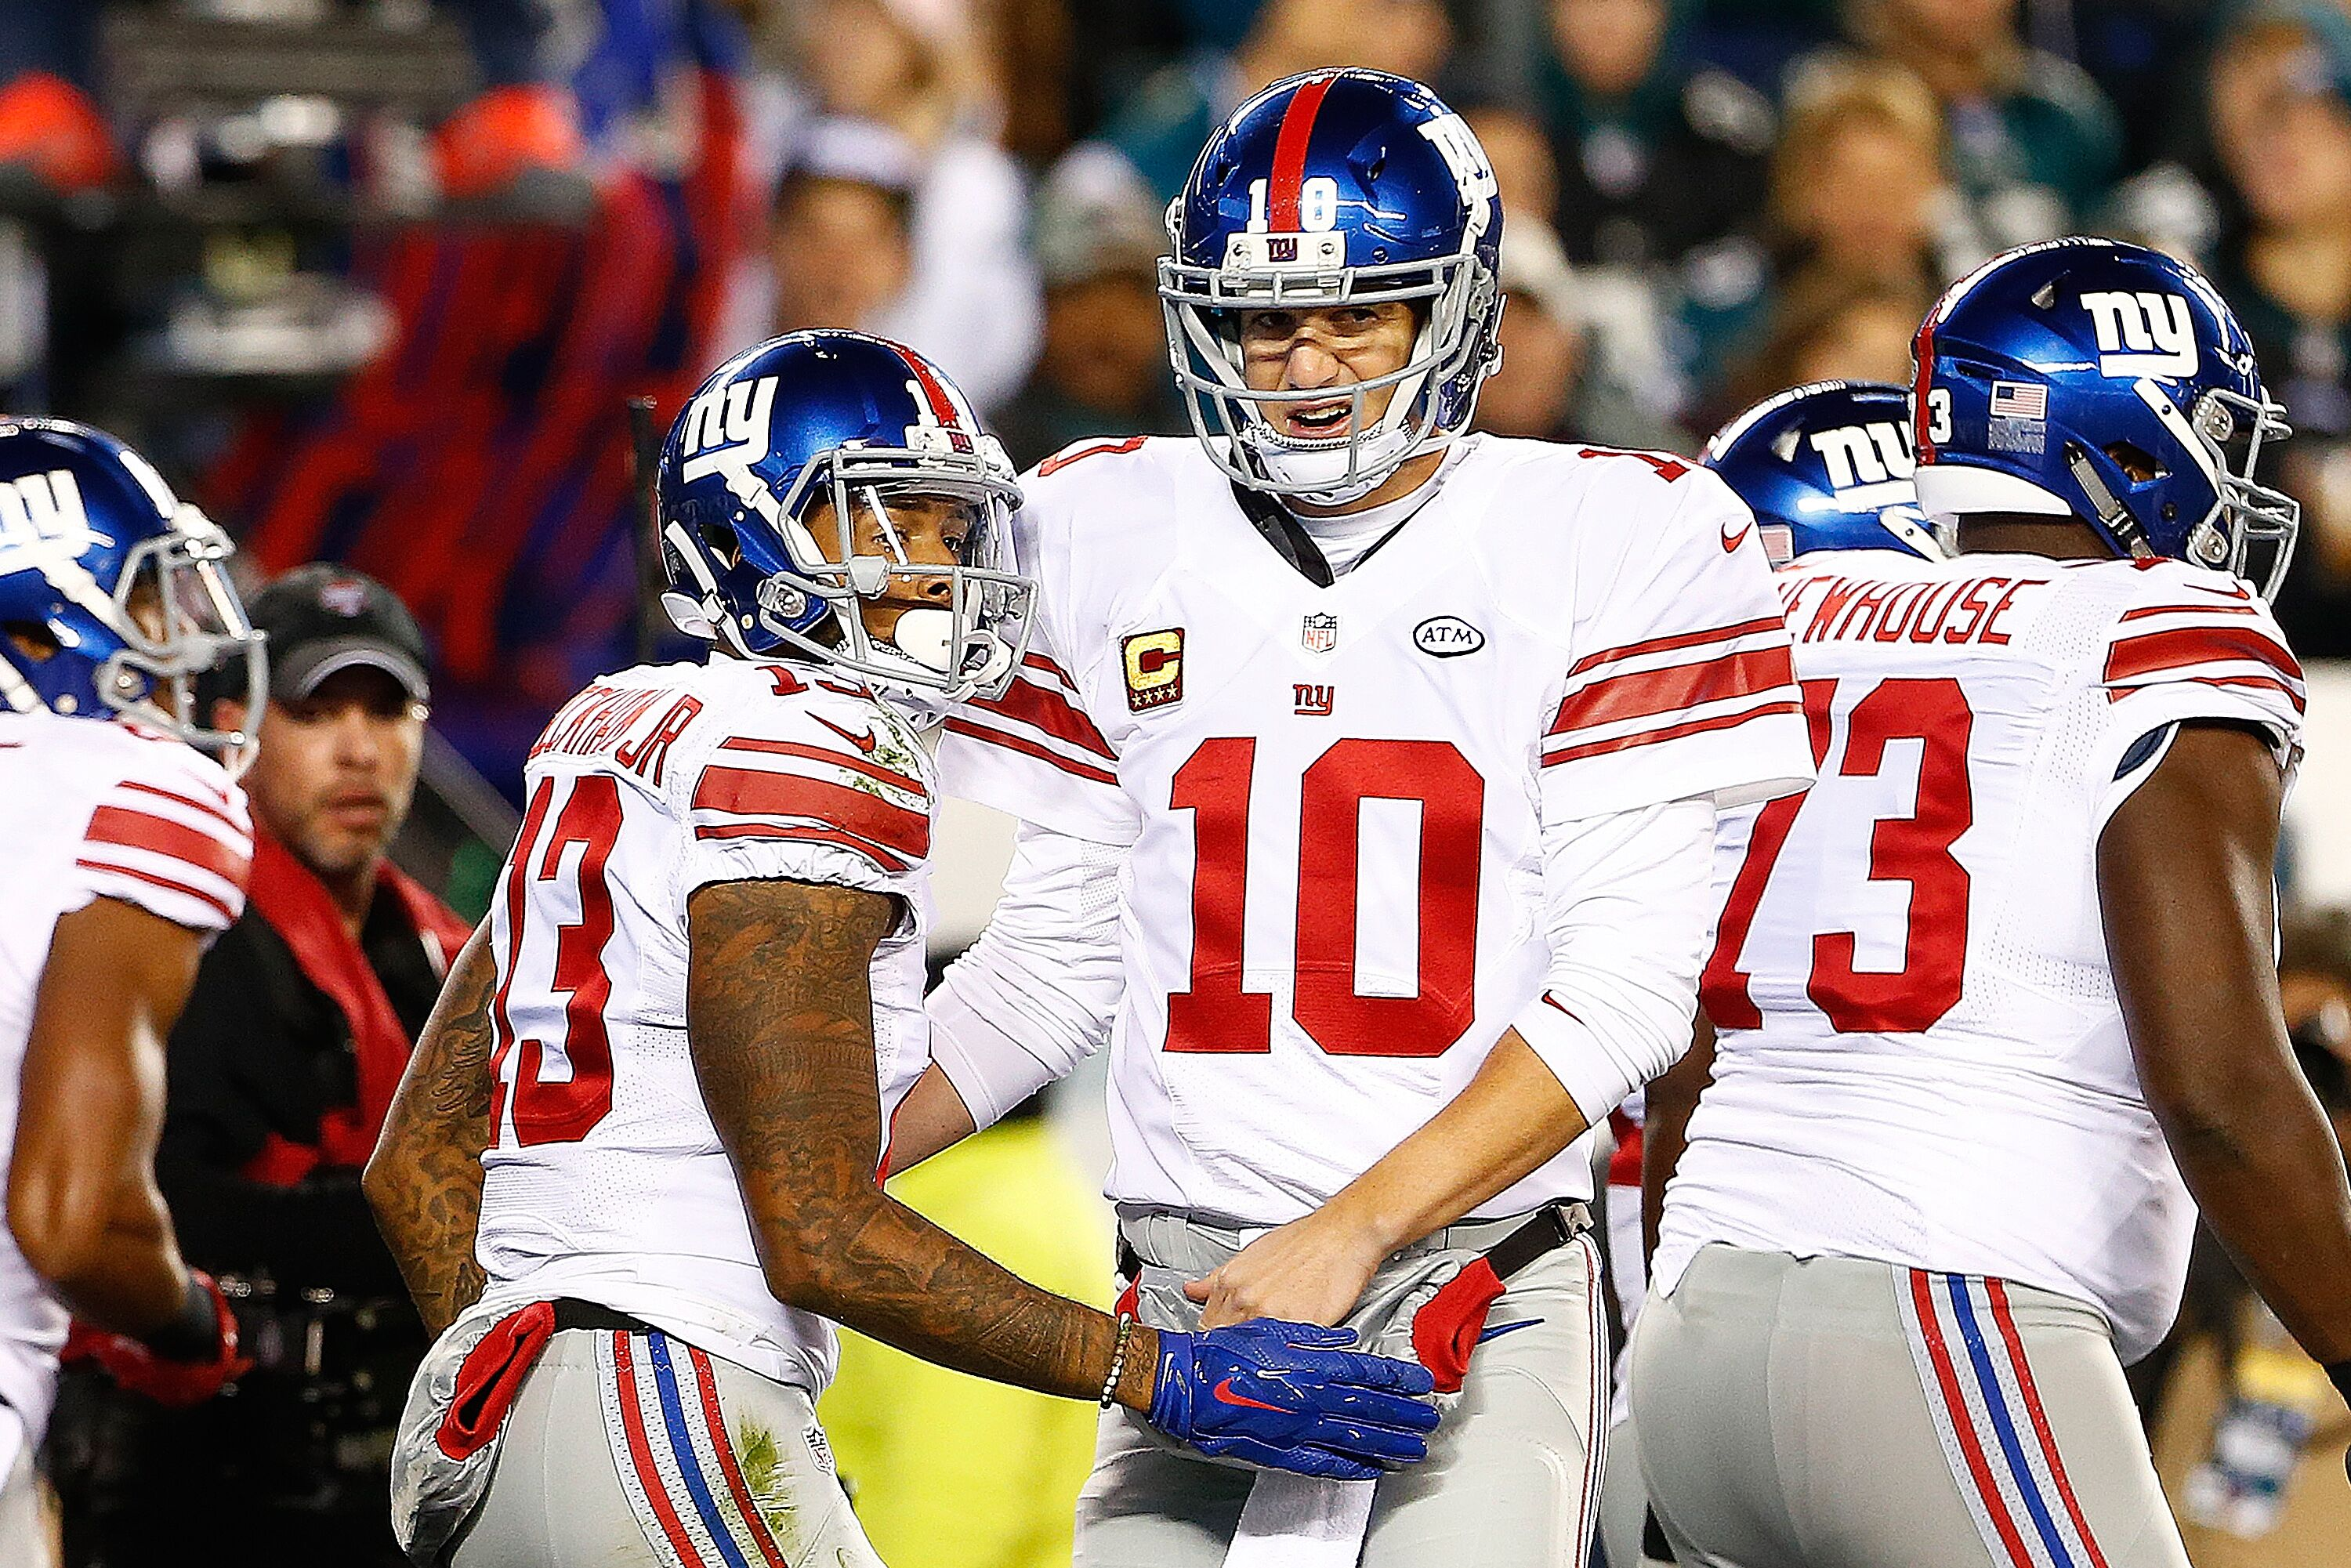 493370298-new-york-giants-v-philadelphia-eagles.jpg